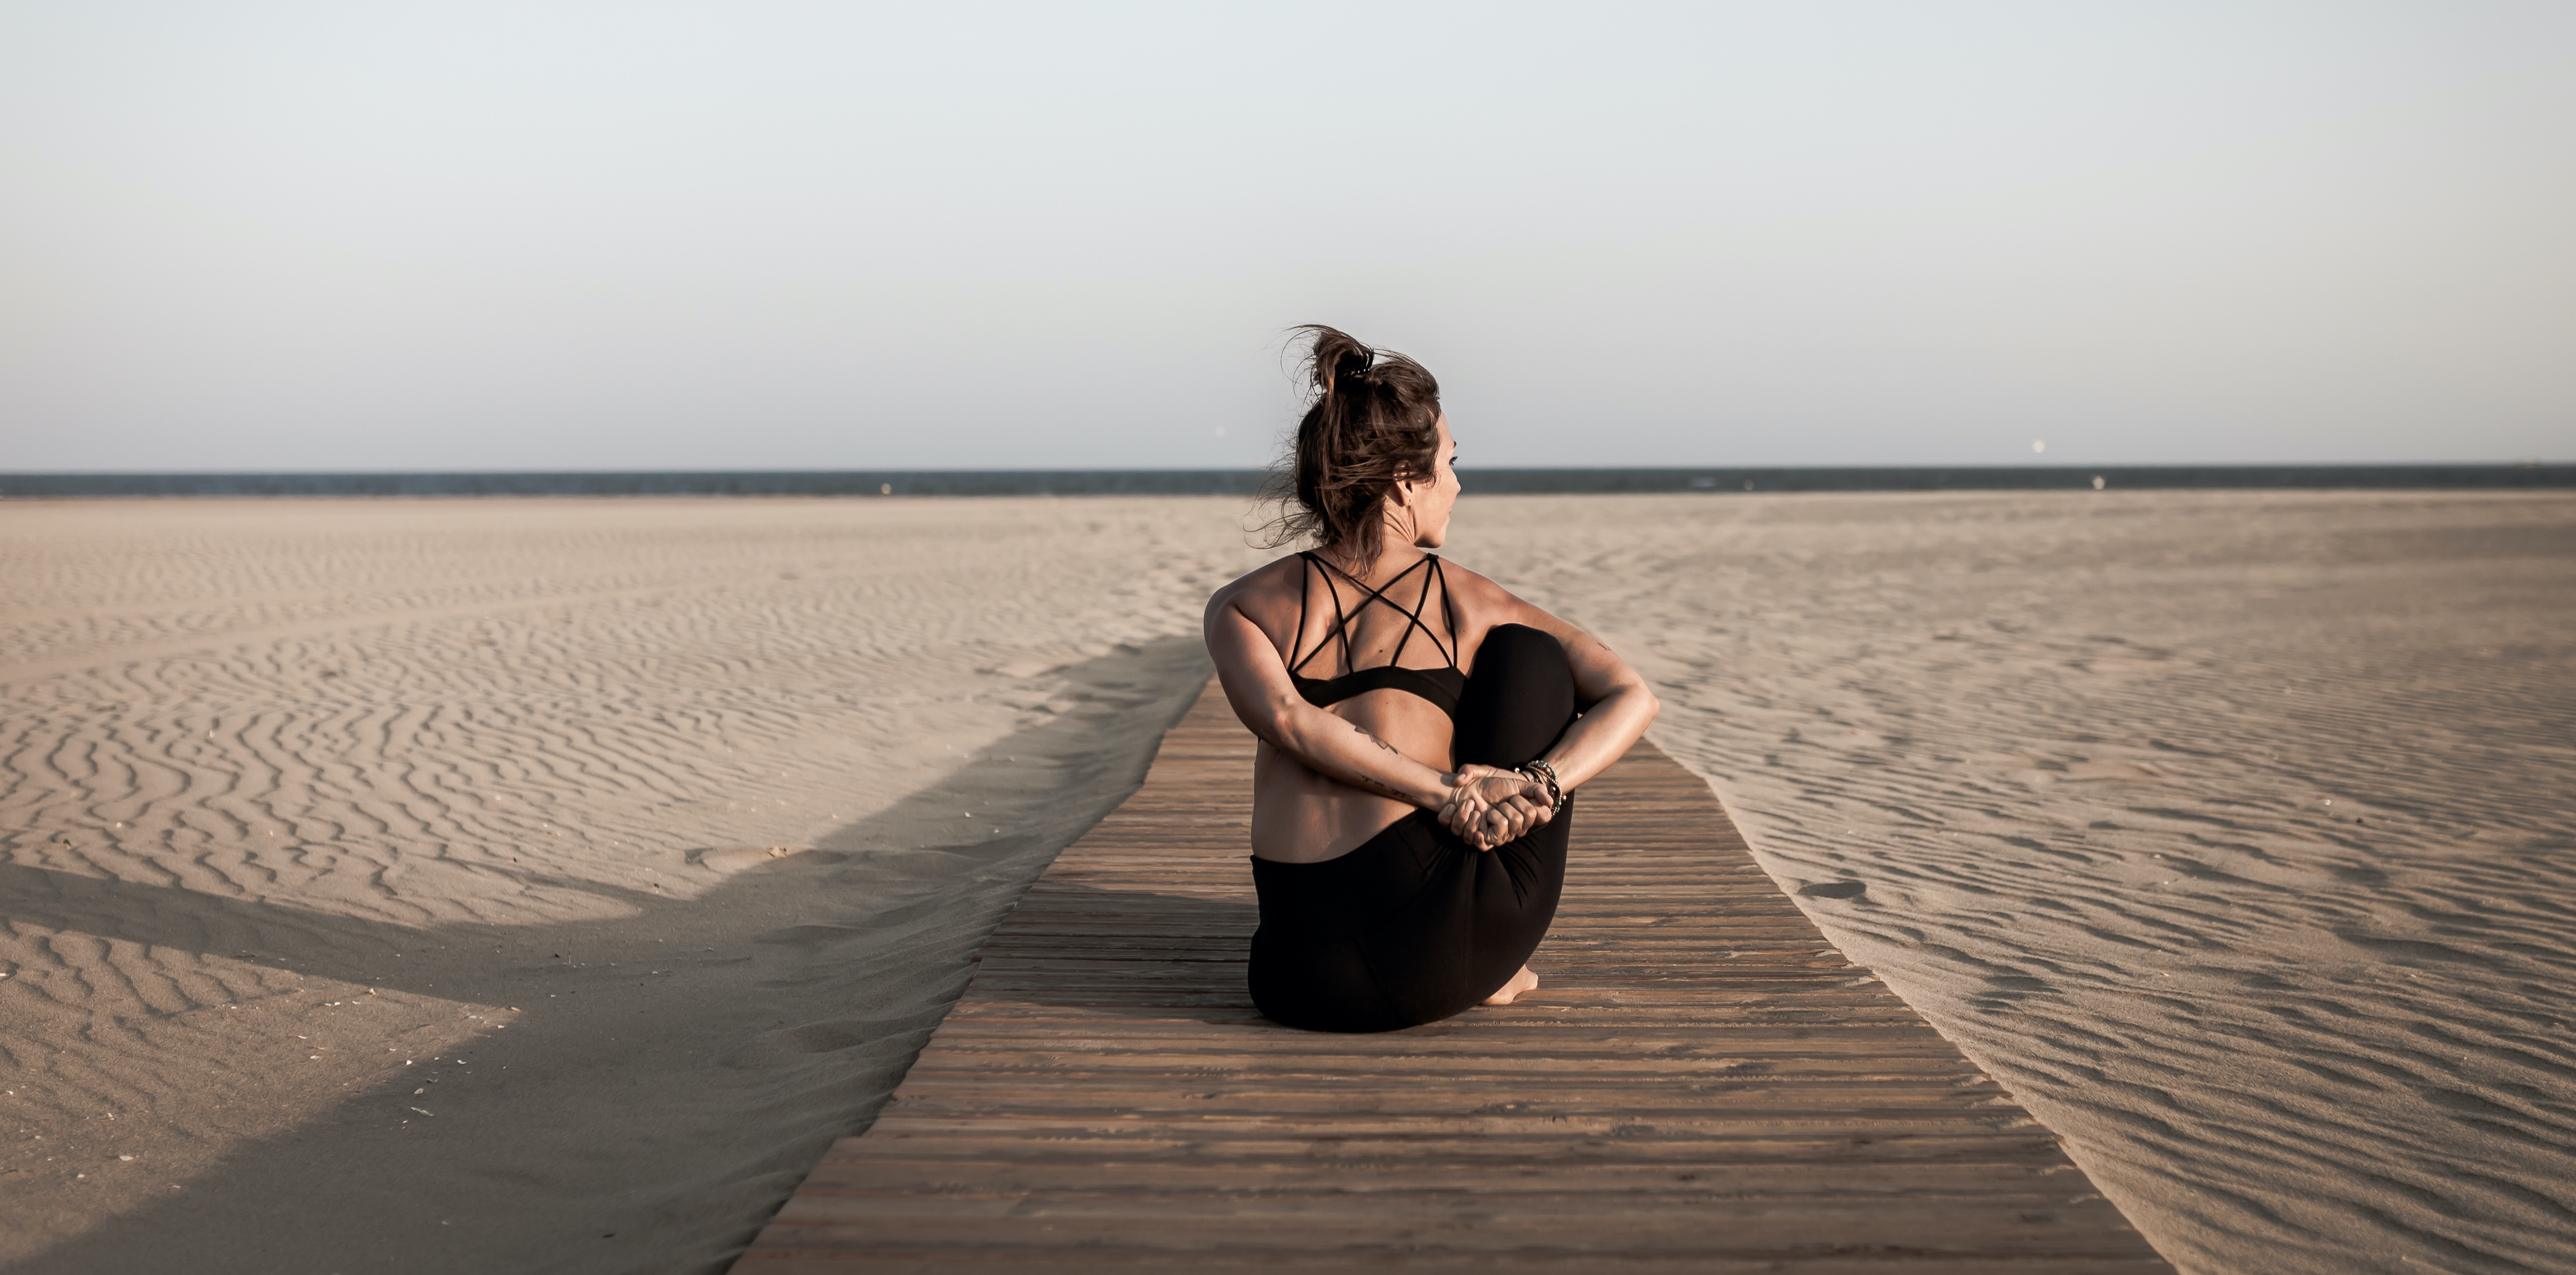 Teaching Yoga Online - Are You Covered with insurance?